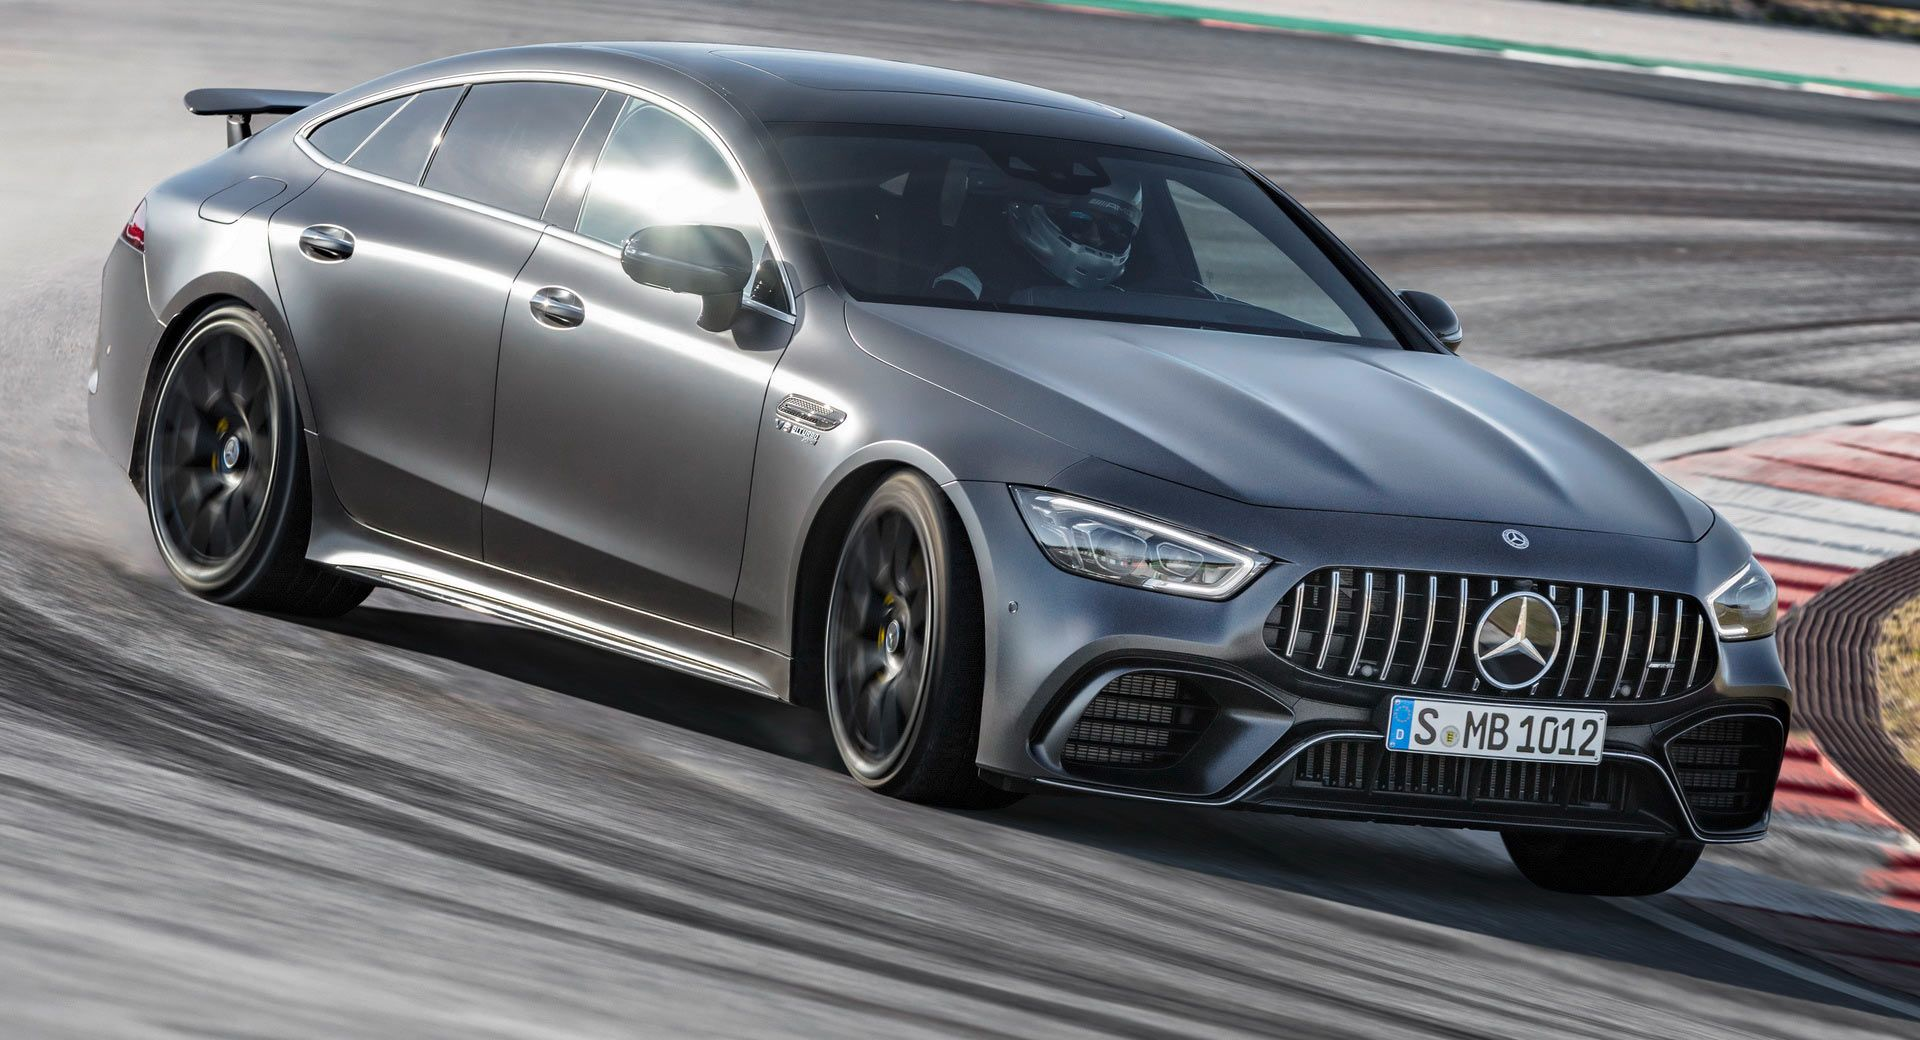 Mercedes Amg Gt 4 Door Coupe Is A Smart Looking 630hp Bruiser Carscoops Mercedes Amg Mercedes Benz Amg Bmw Classic Cars